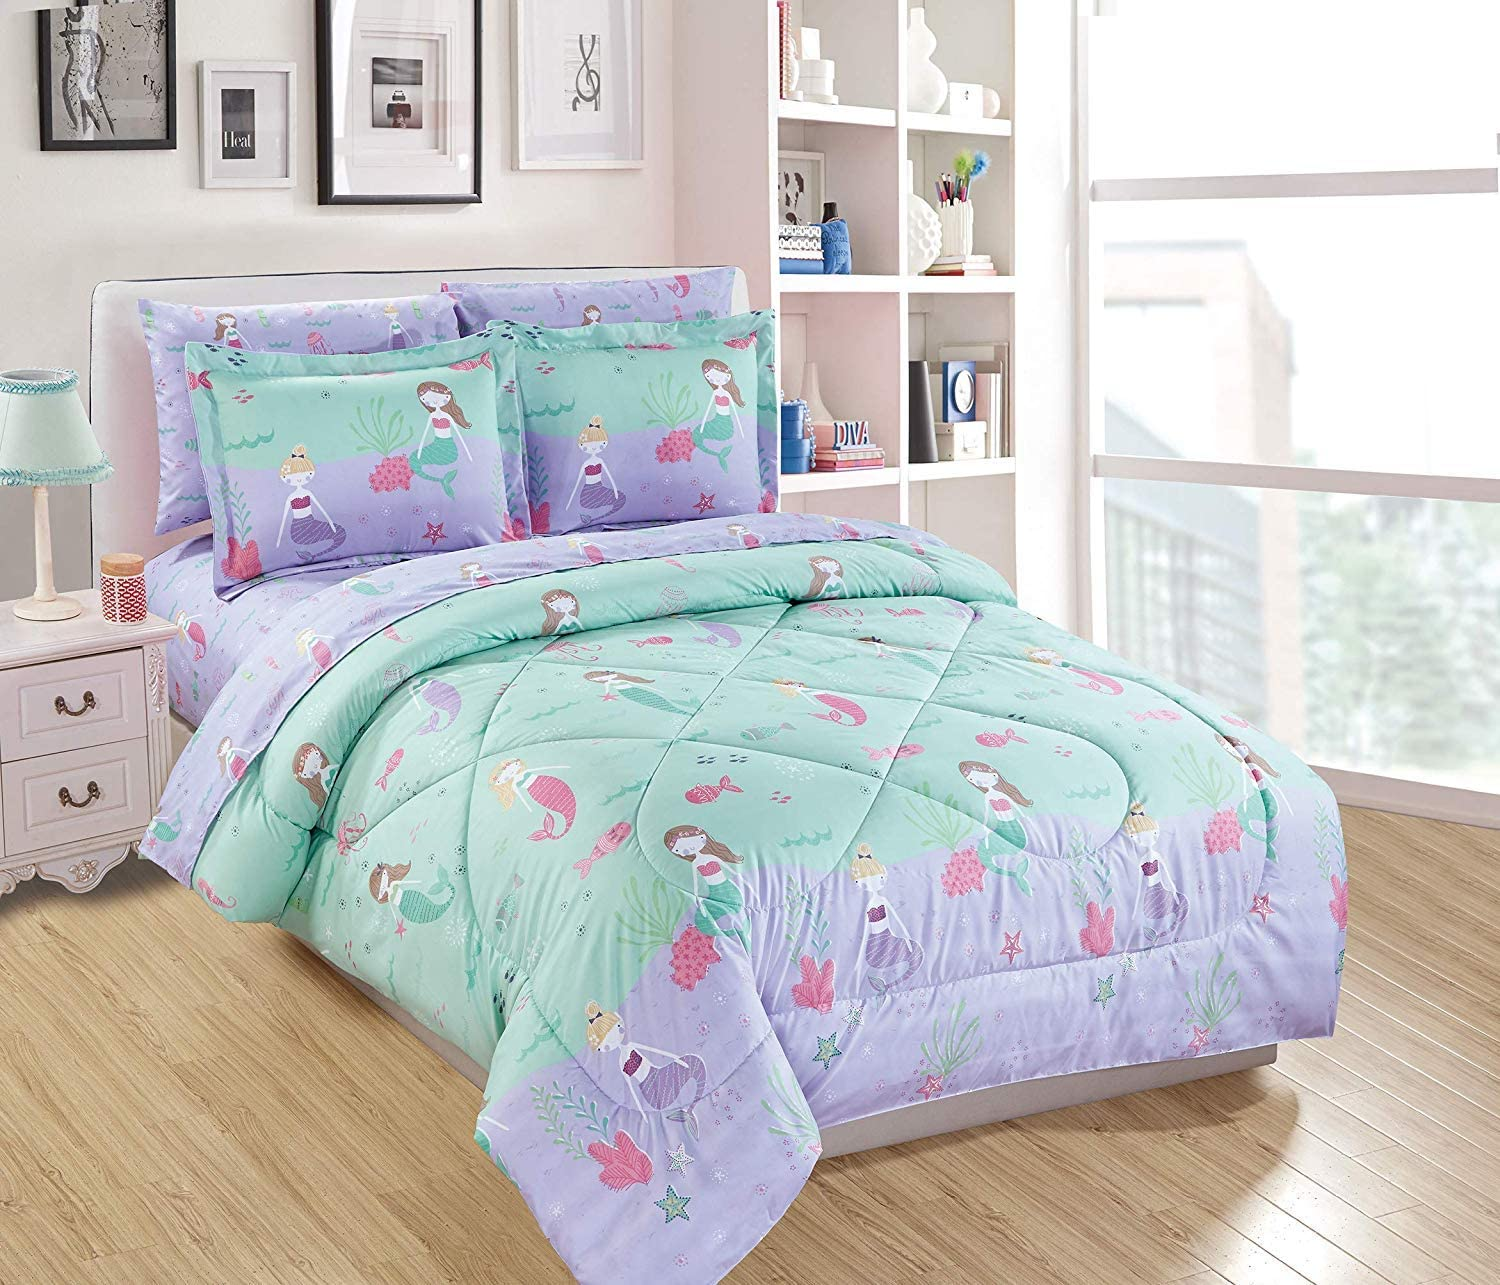 Elegant Homes Multicolor Mermaid Sea Life Design 7 Piece Comforter Bedding Set for Girls/Kids Bed in a Bag with Sheet Set # Mermaid (Queen Size)